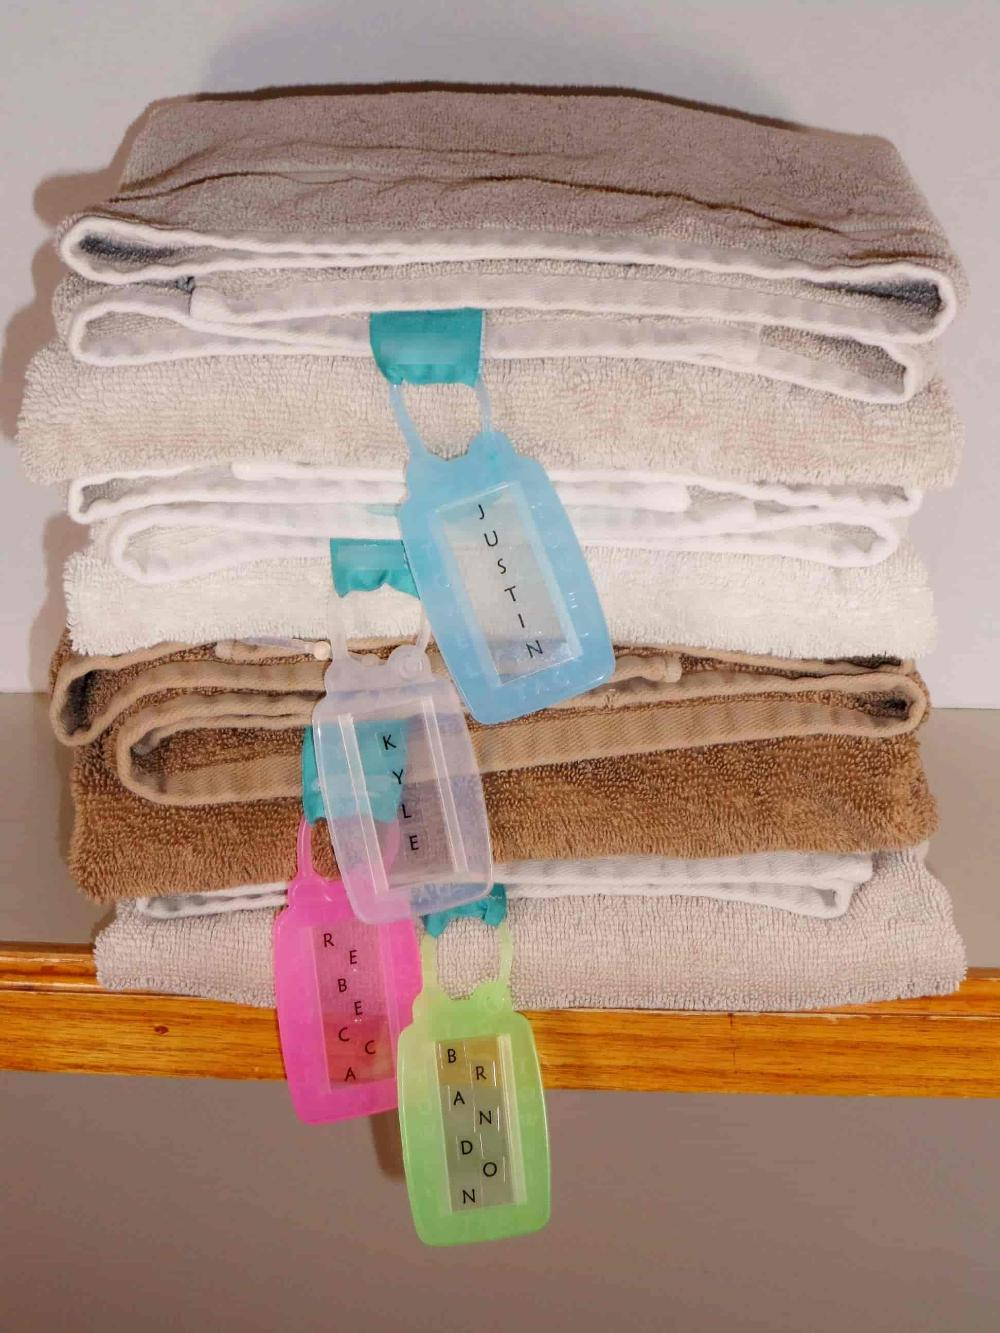 towel name tag, name tag for towels, name your towel, organize your bathroom, bathroom accessories